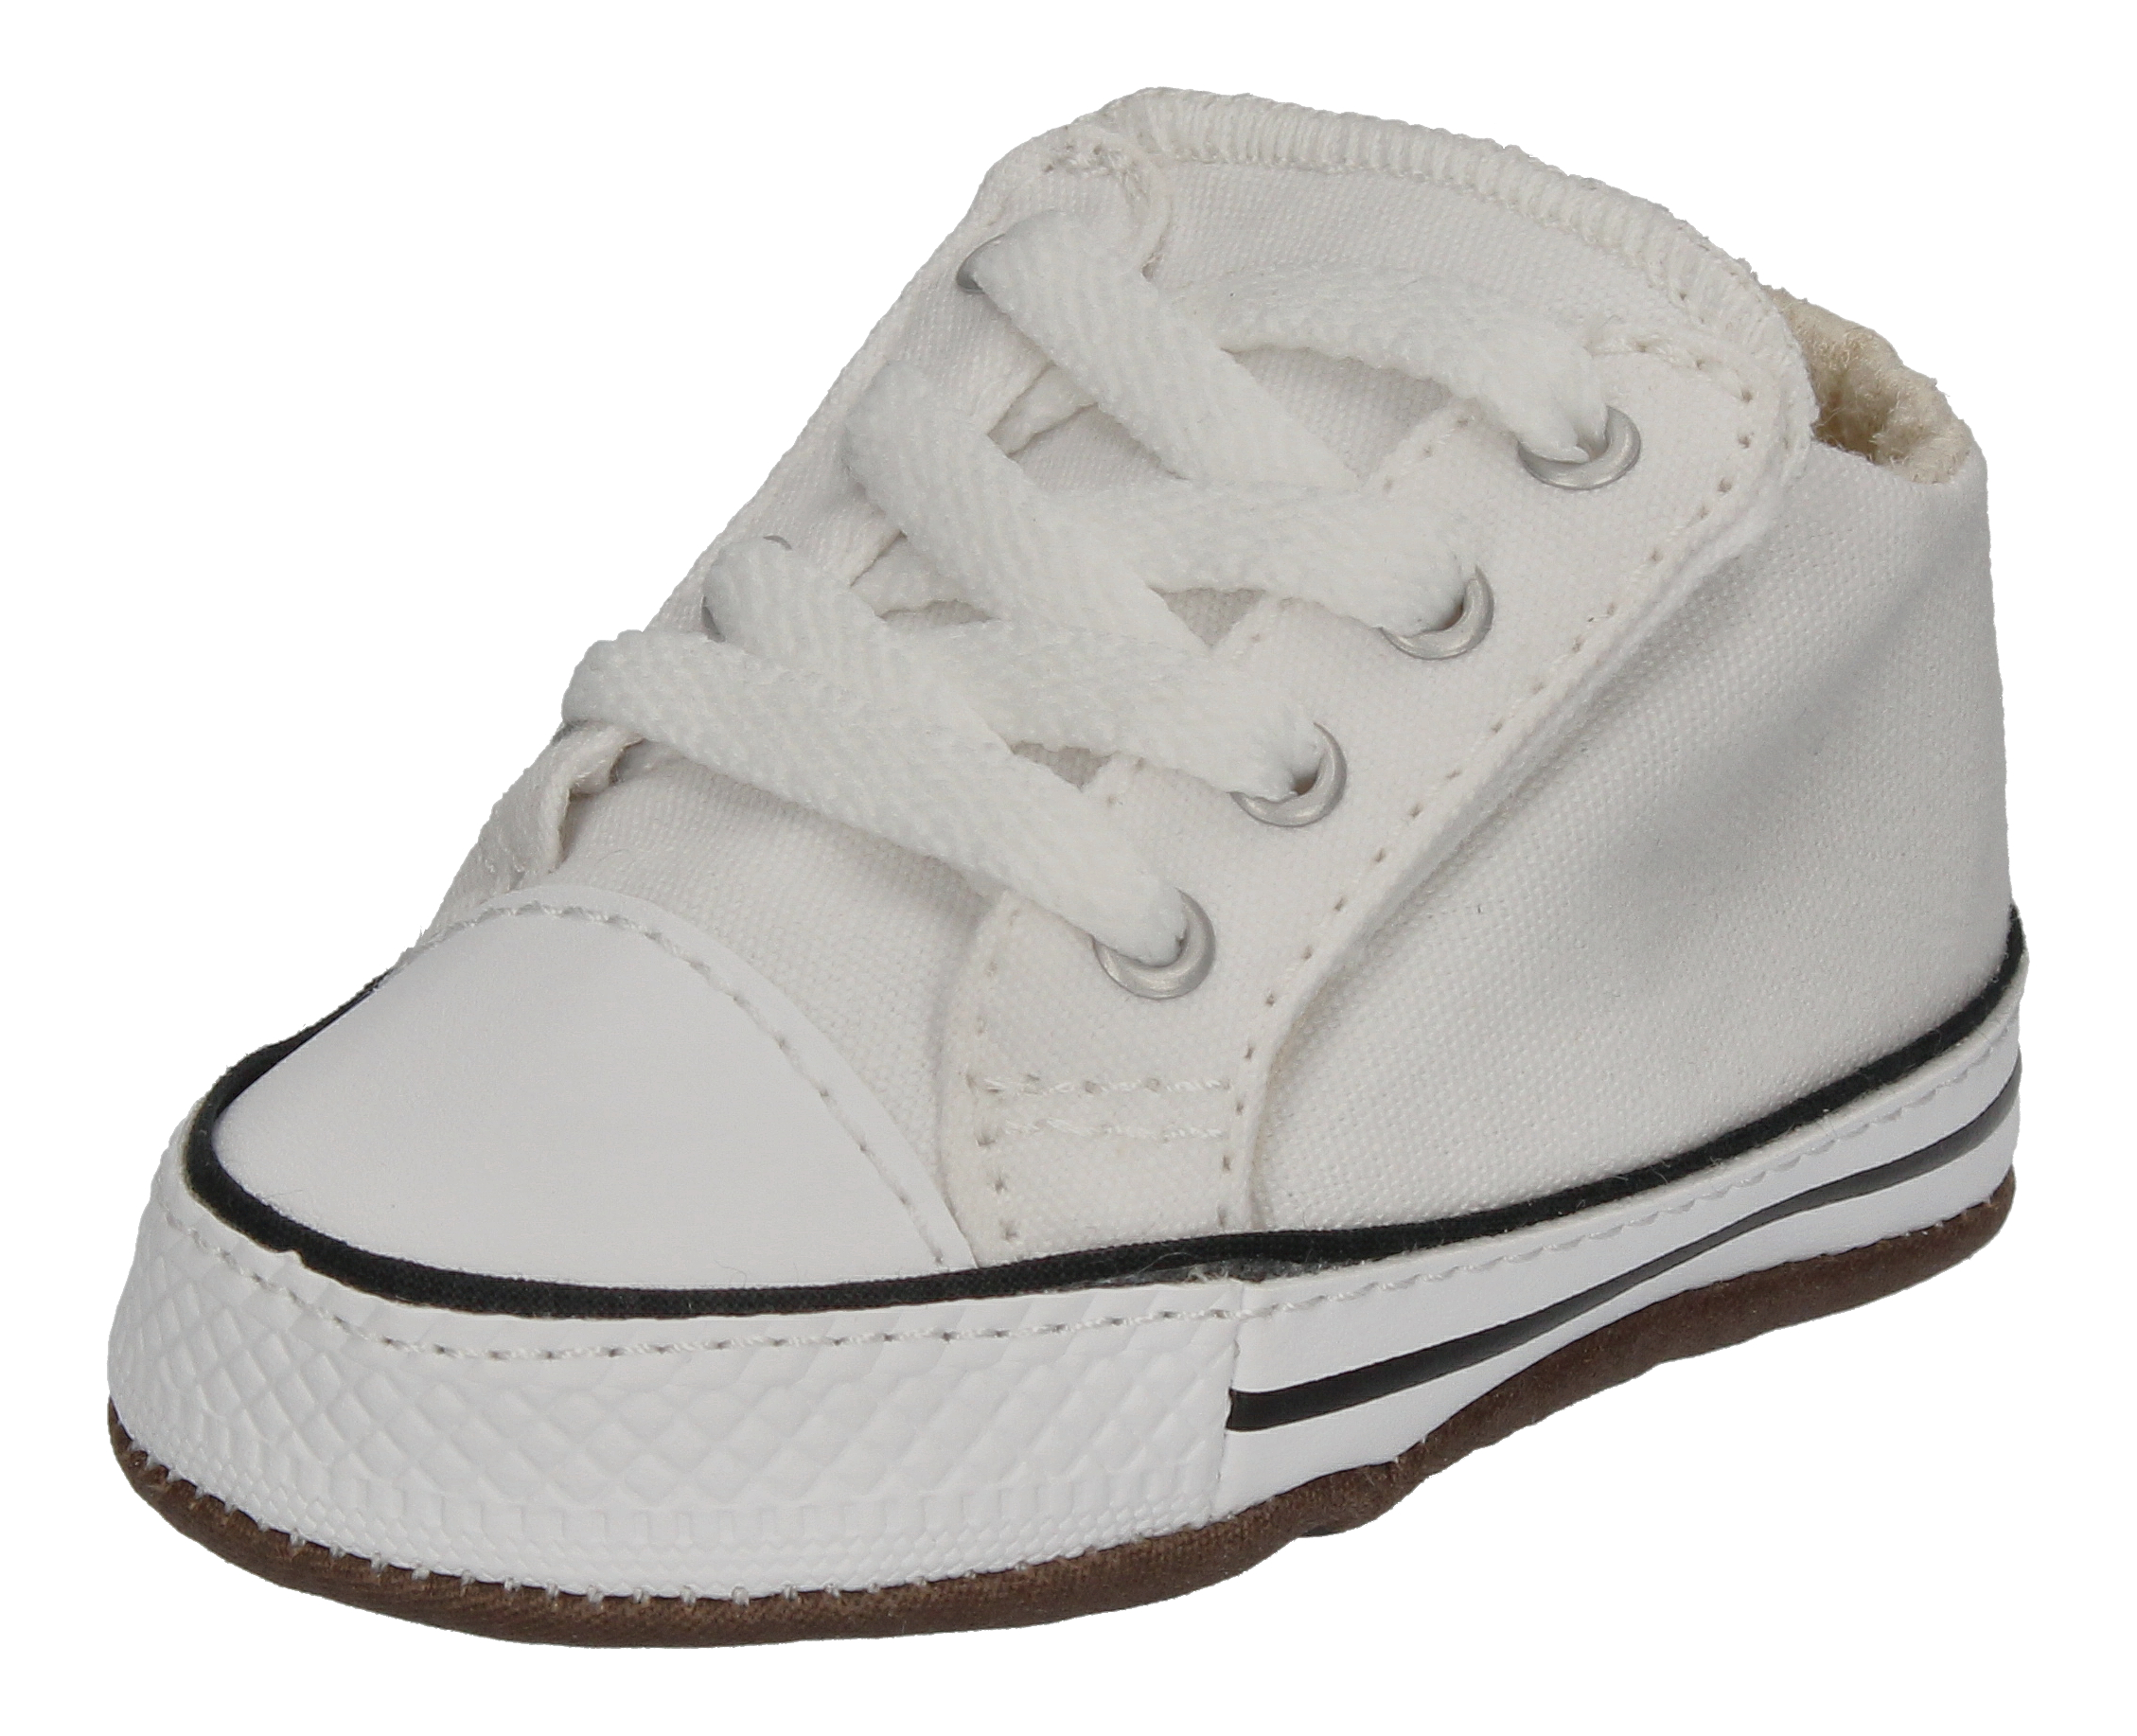 CONVERSE Babyschuhe - CTAS CRIBSTER MID 865157C white_1